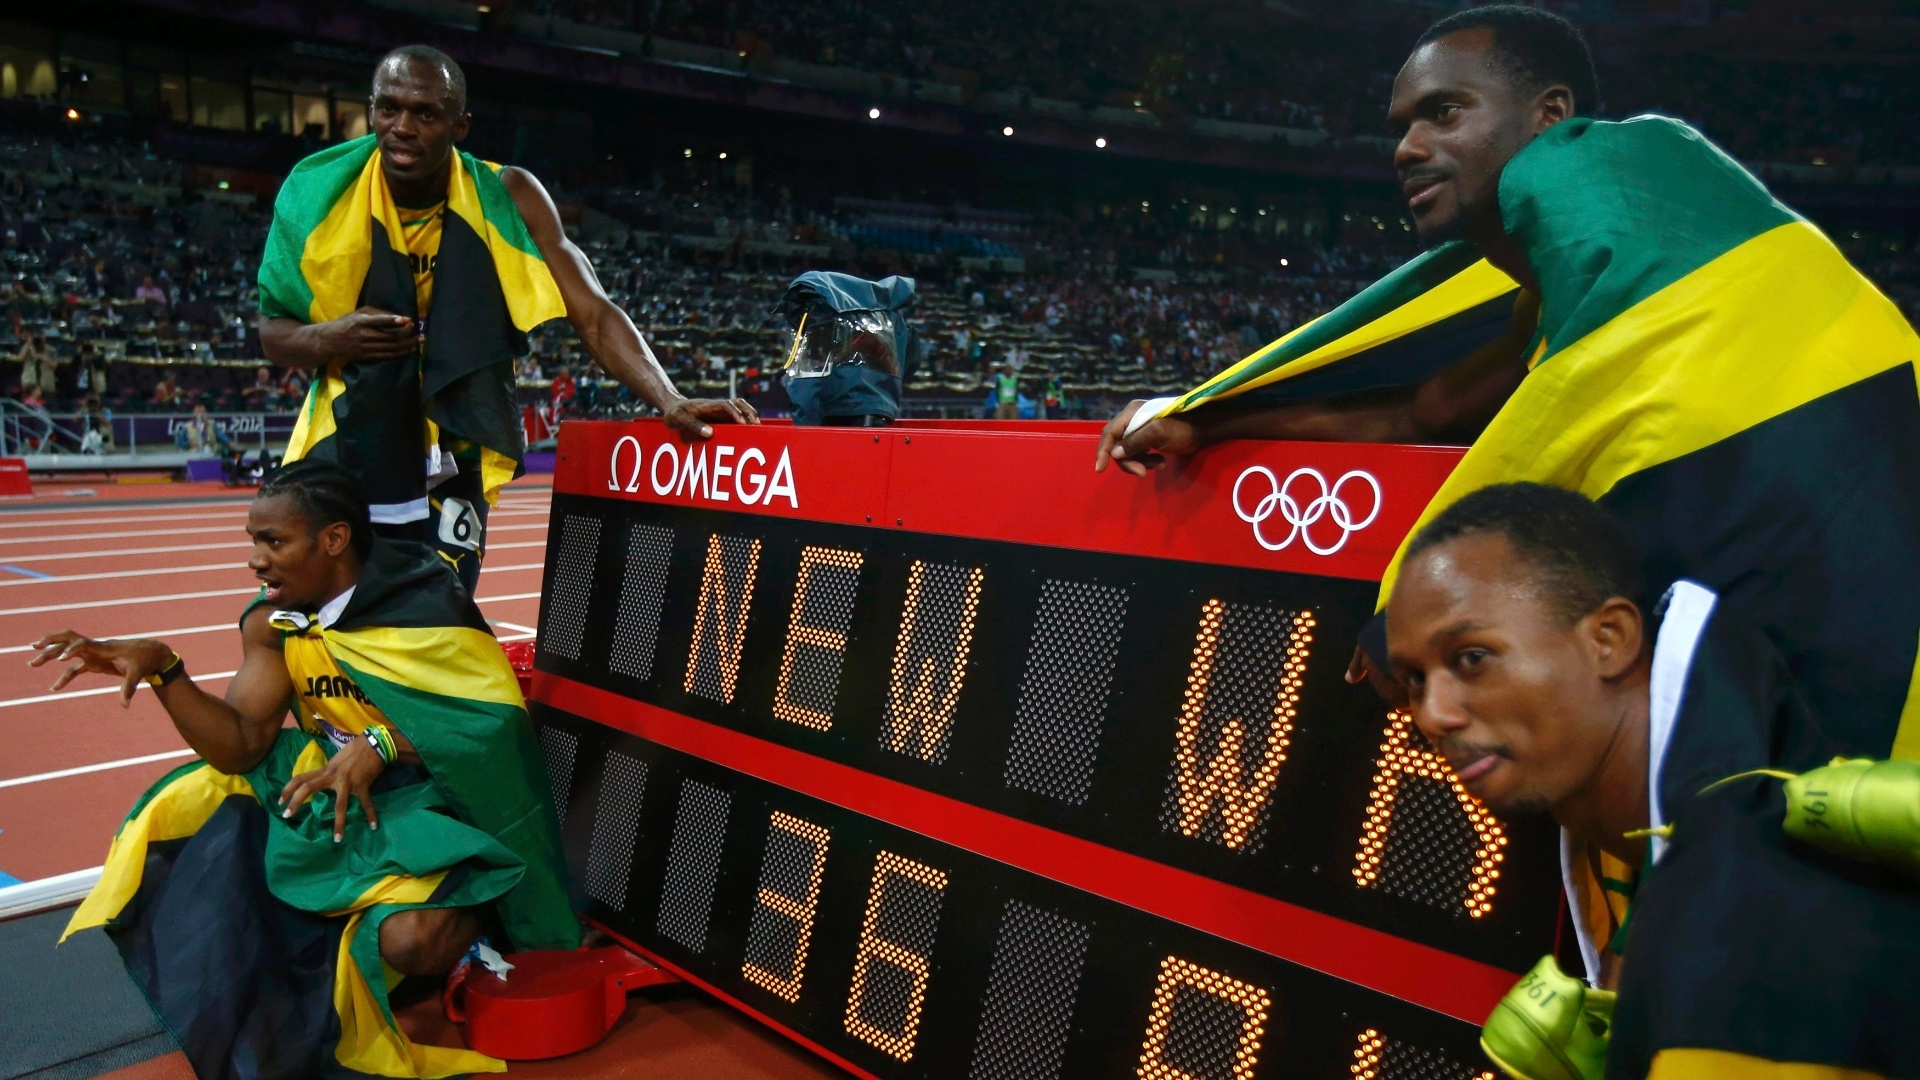 Equipe jamaicana do revezamento 4x100 m comemora medalha de ouro e novo recorde mundial ao lado de marca